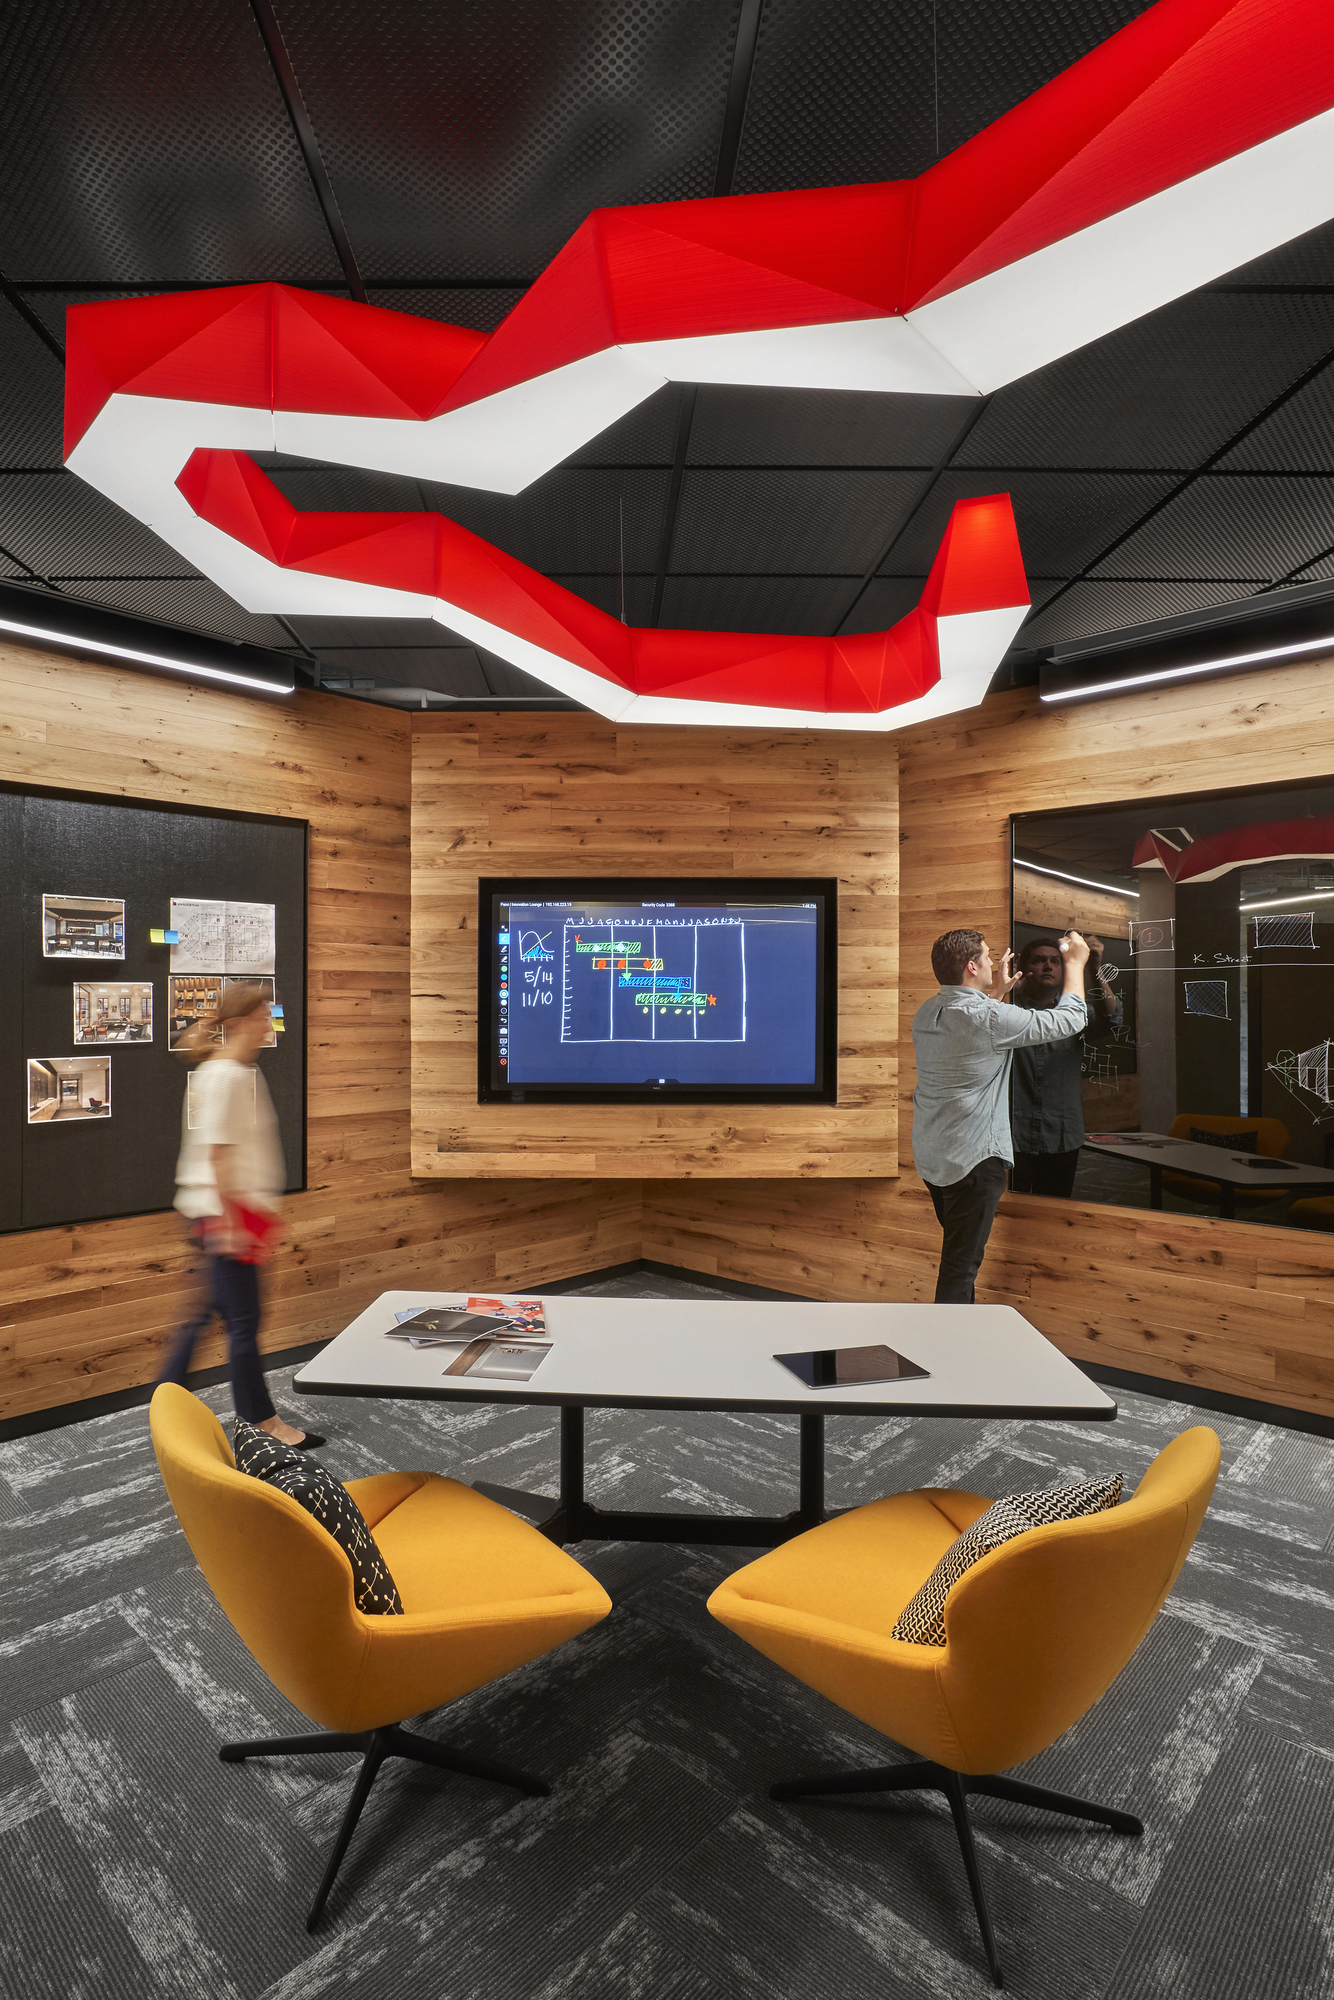 conference room usage etiquette and policy template. Black Bedroom Furniture Sets. Home Design Ideas